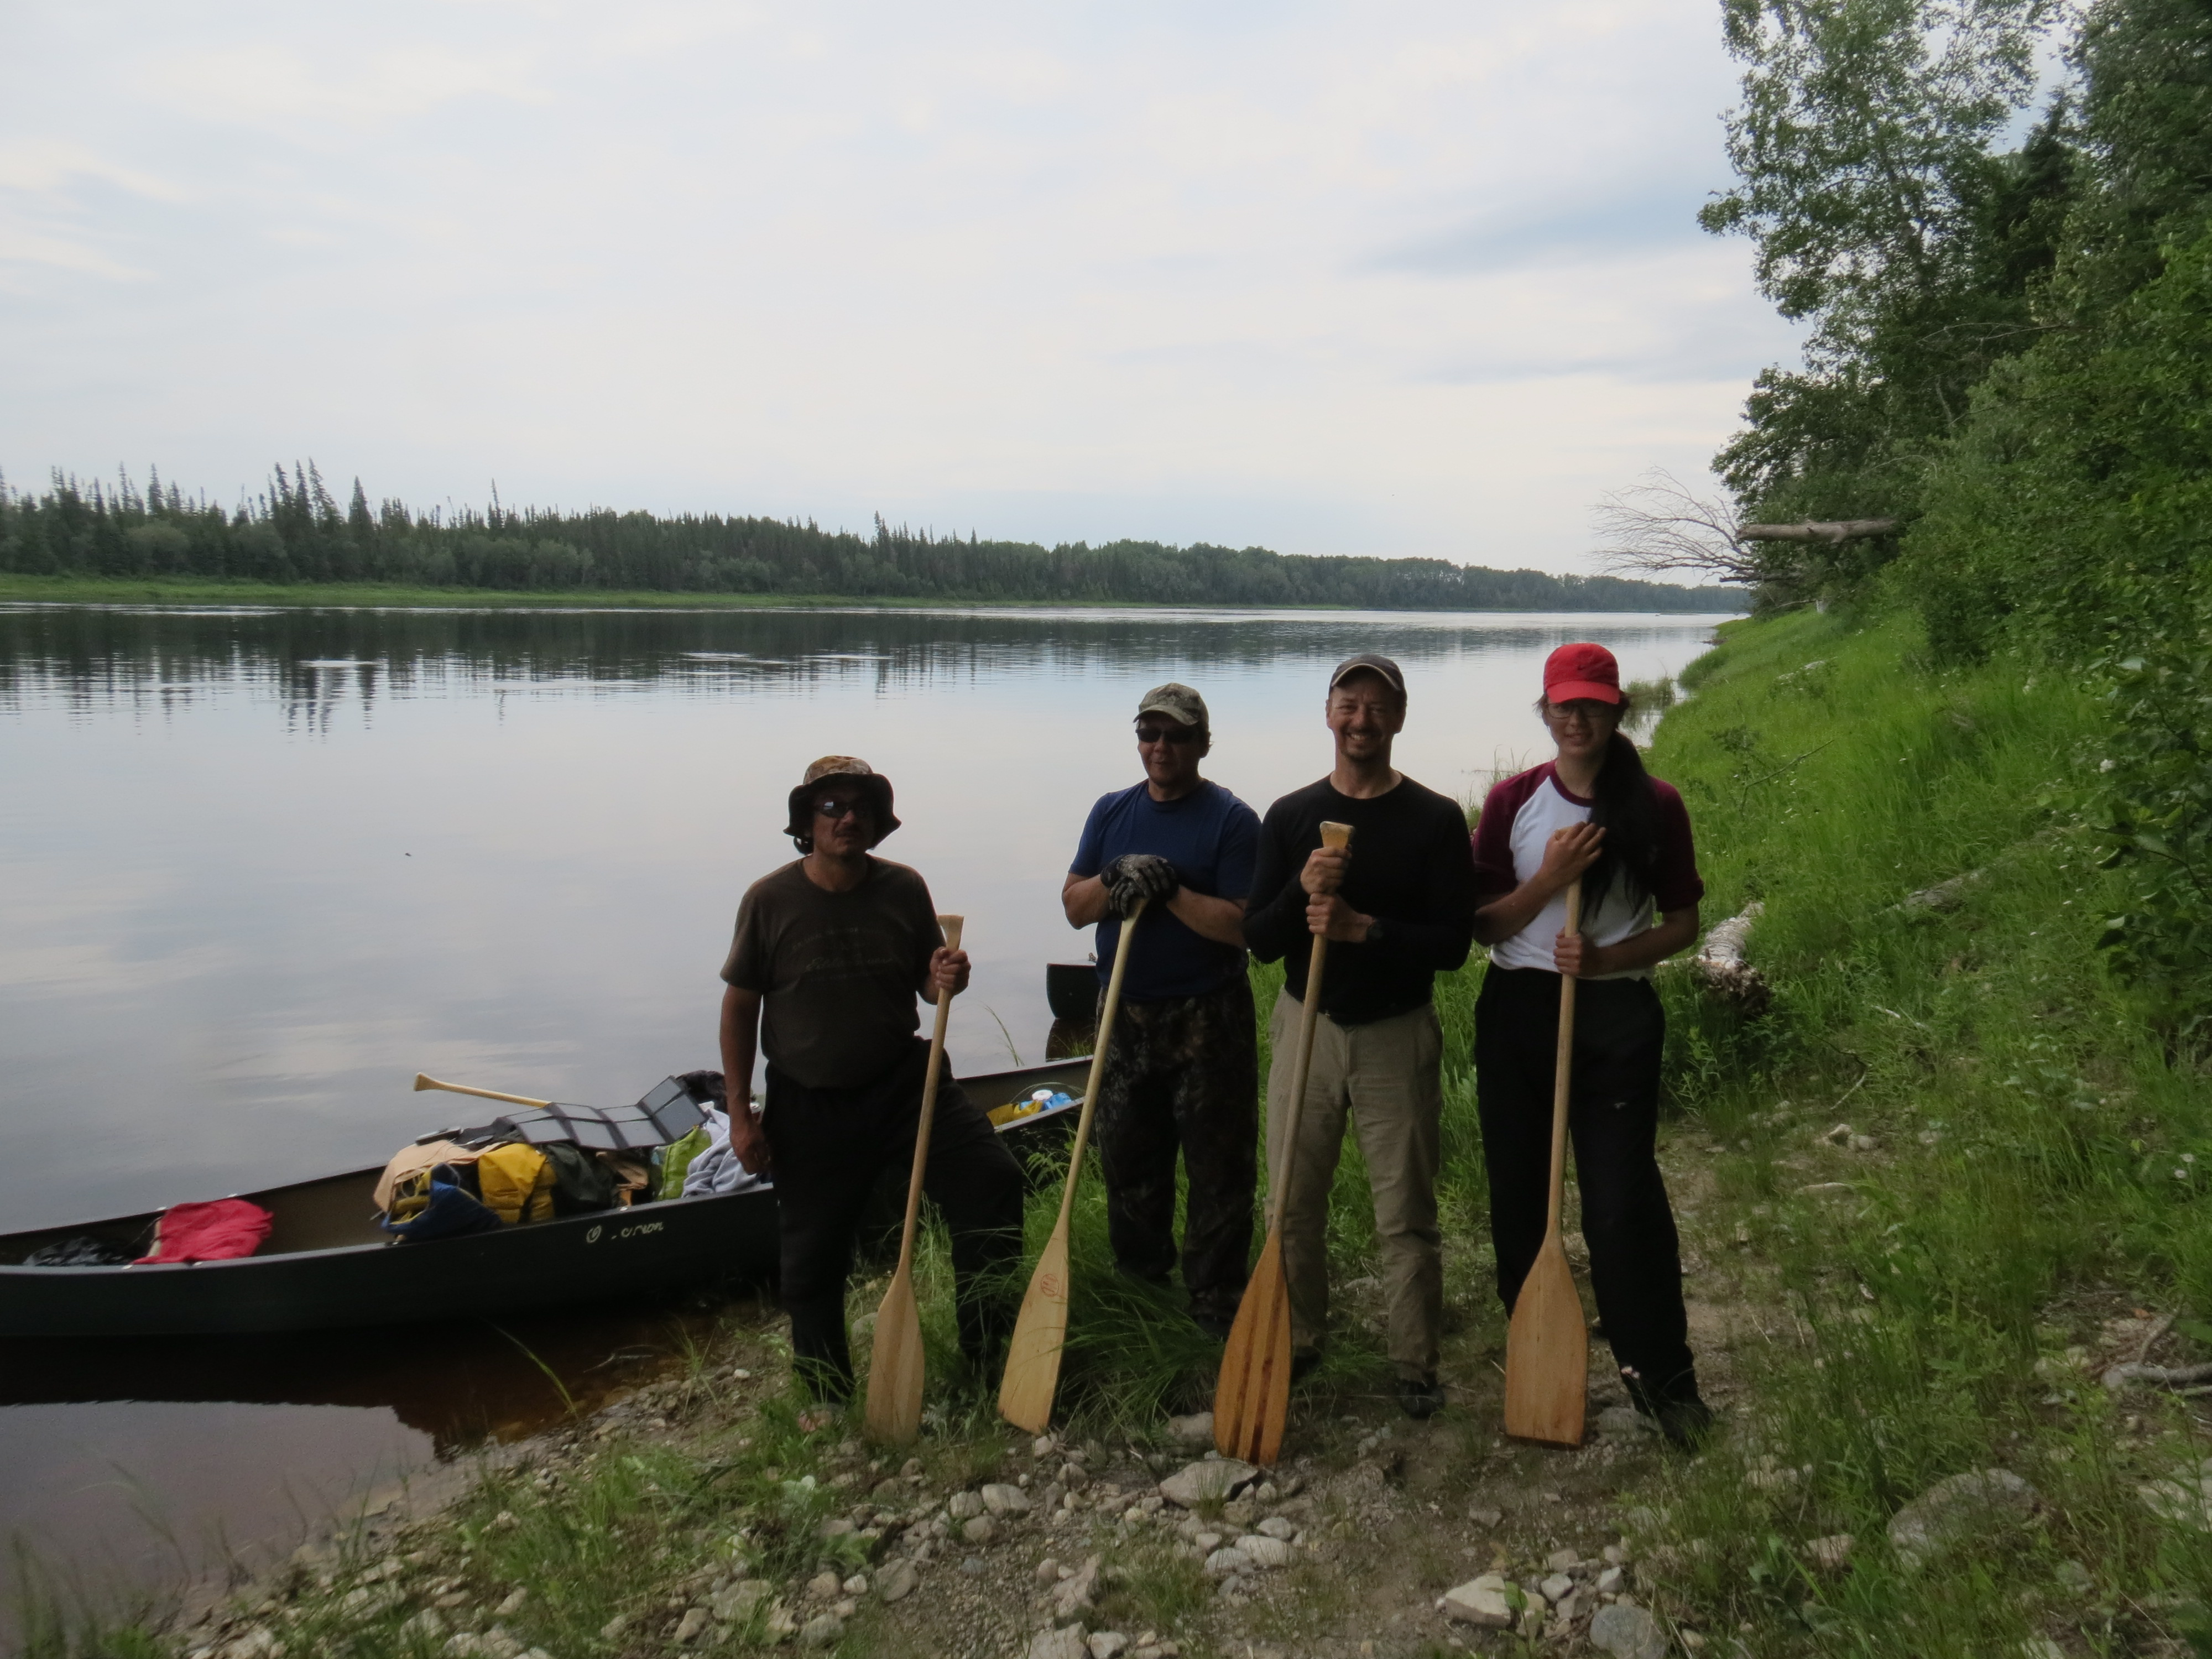 North French River Biodiversity Expedition– July 1 to July 11, 2015 Ted